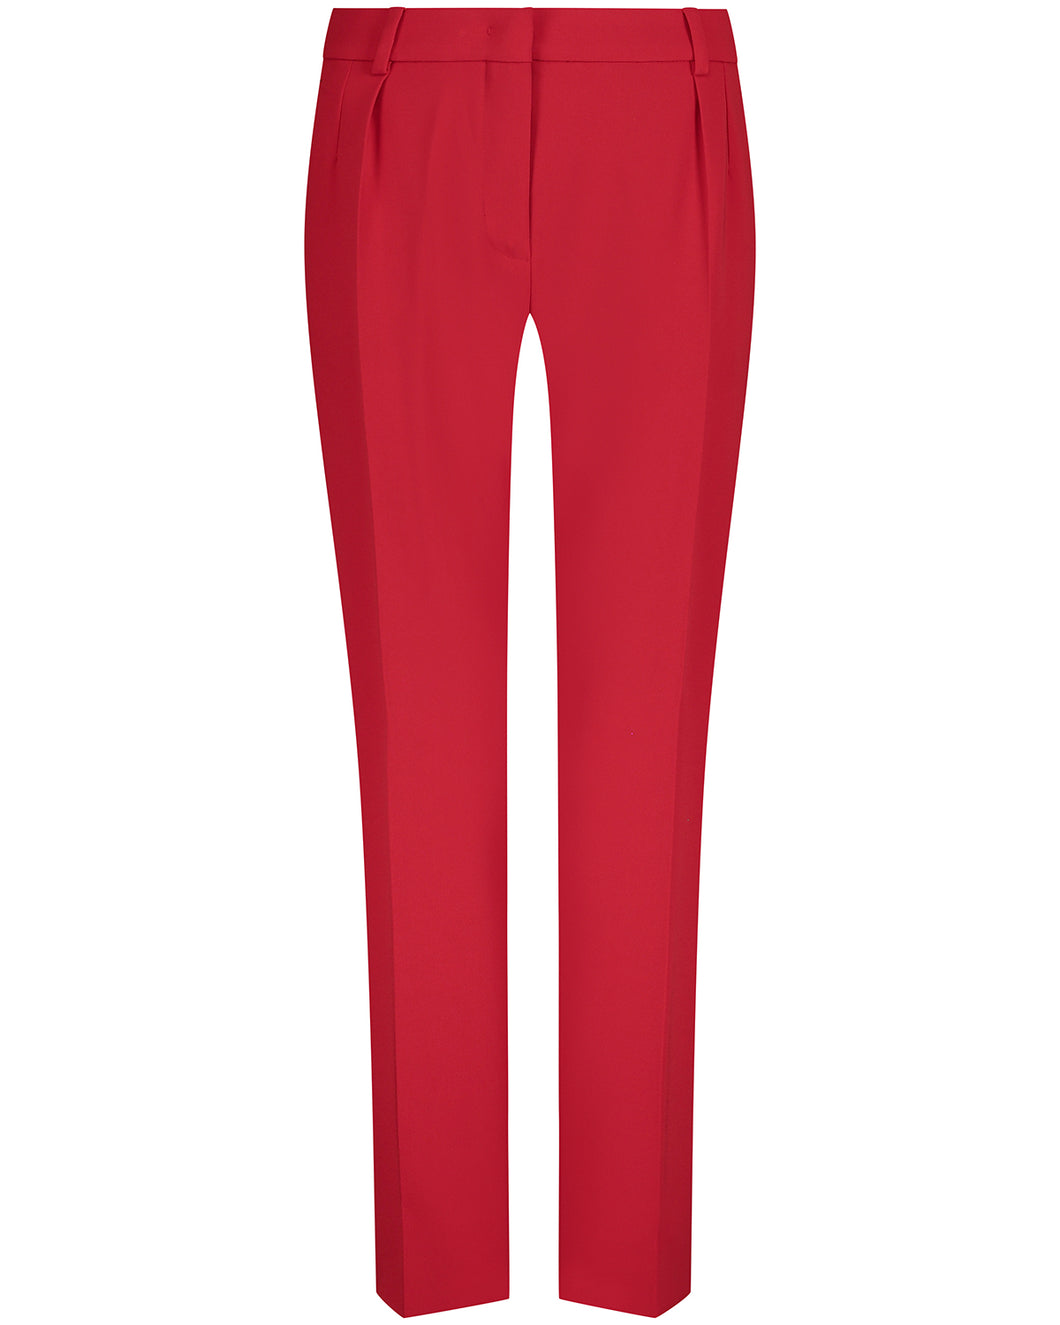 Lamella Red Cady Trousers